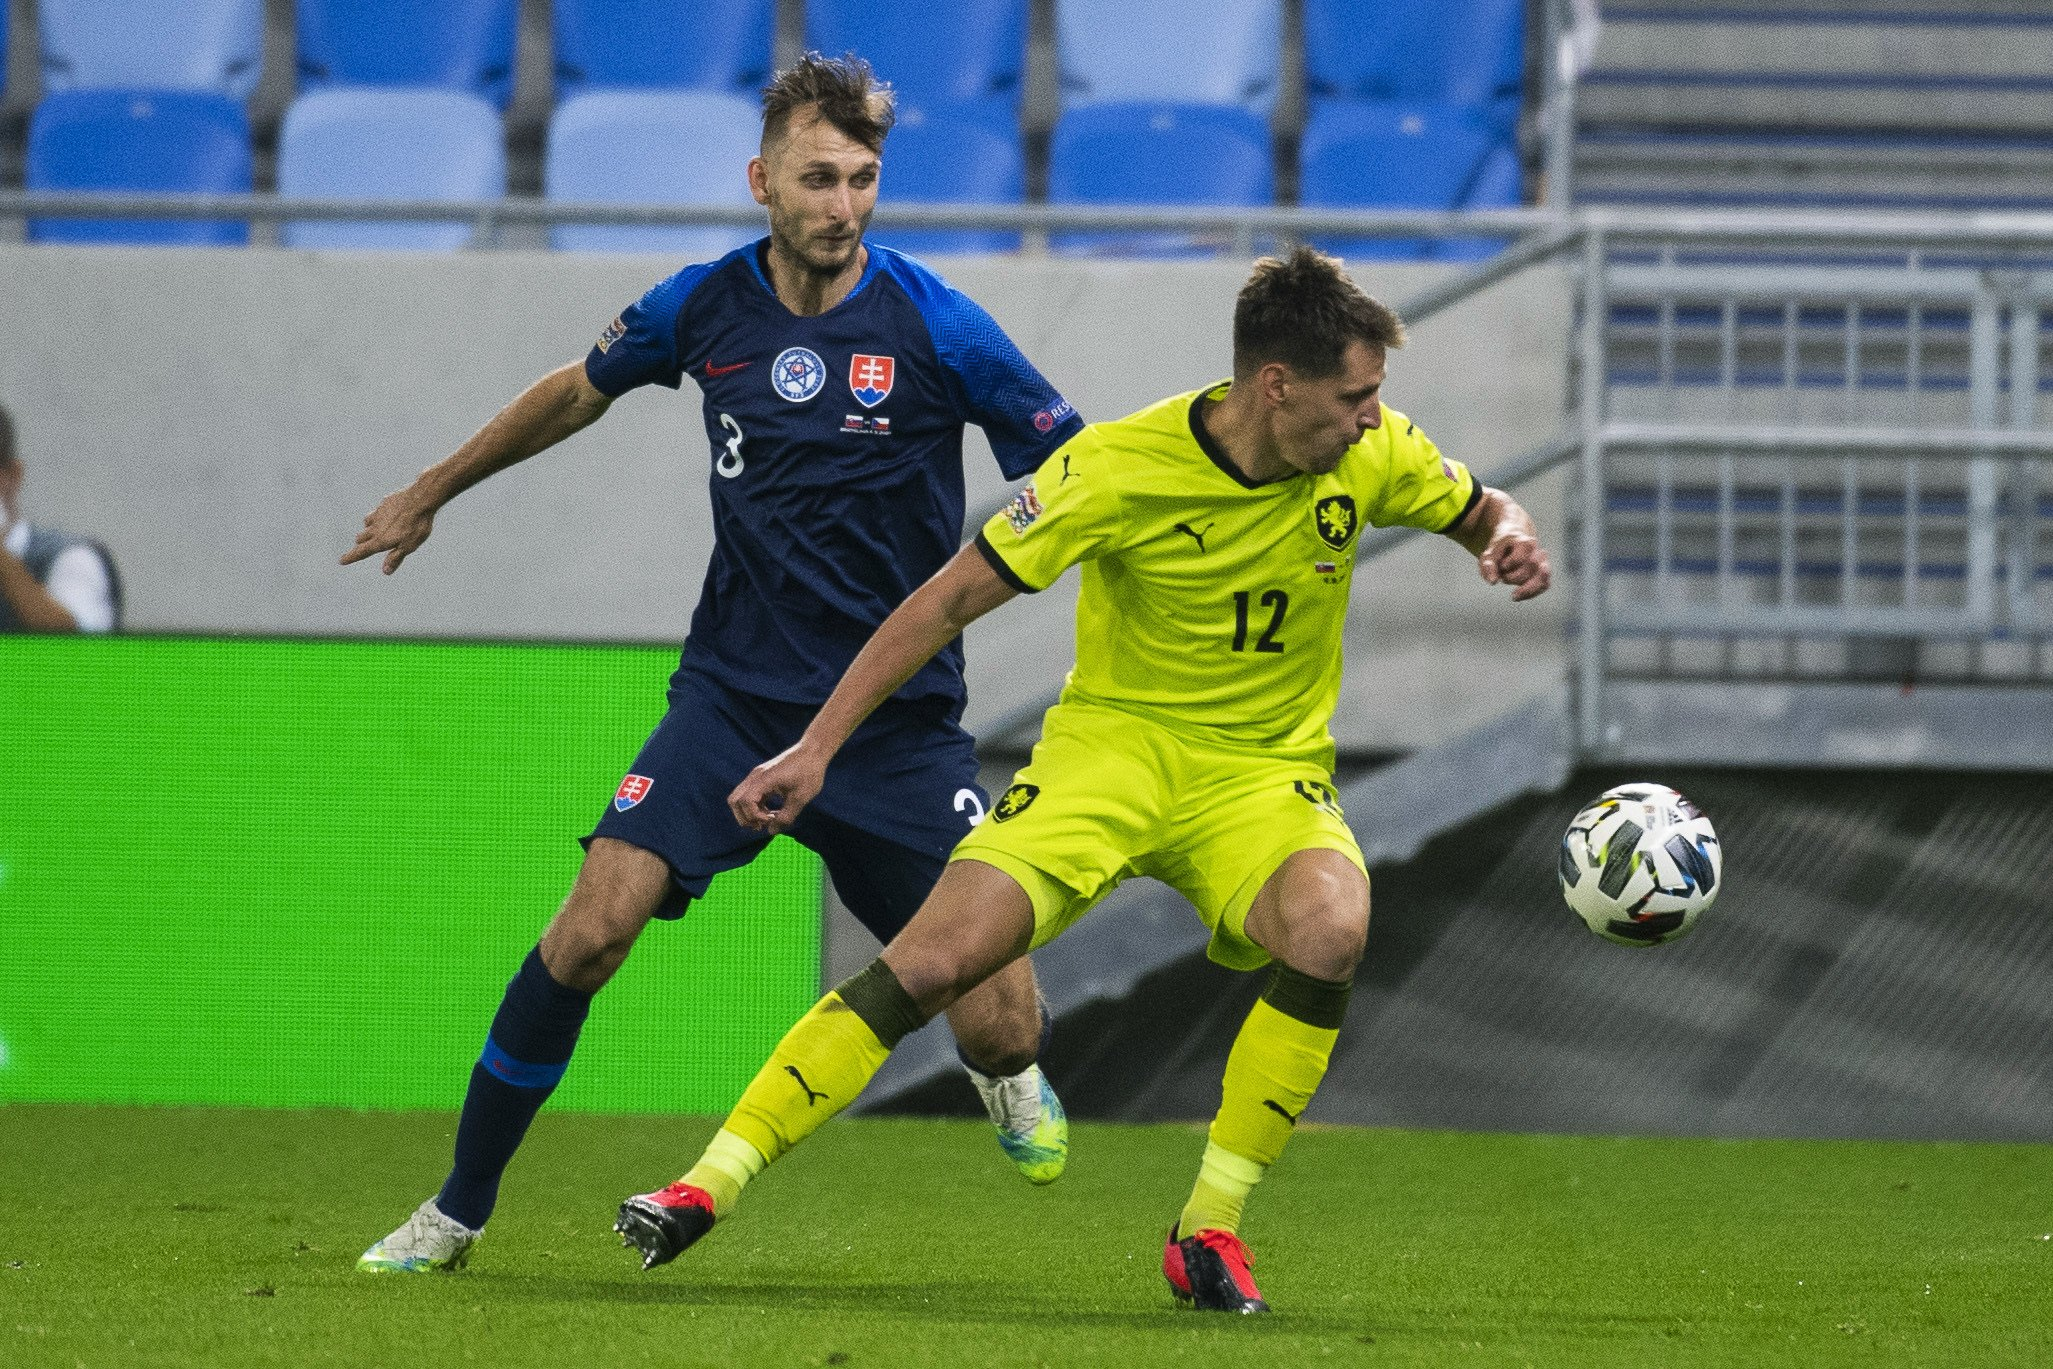 Czech Republic-Scotland Nations League game on, says UEFA